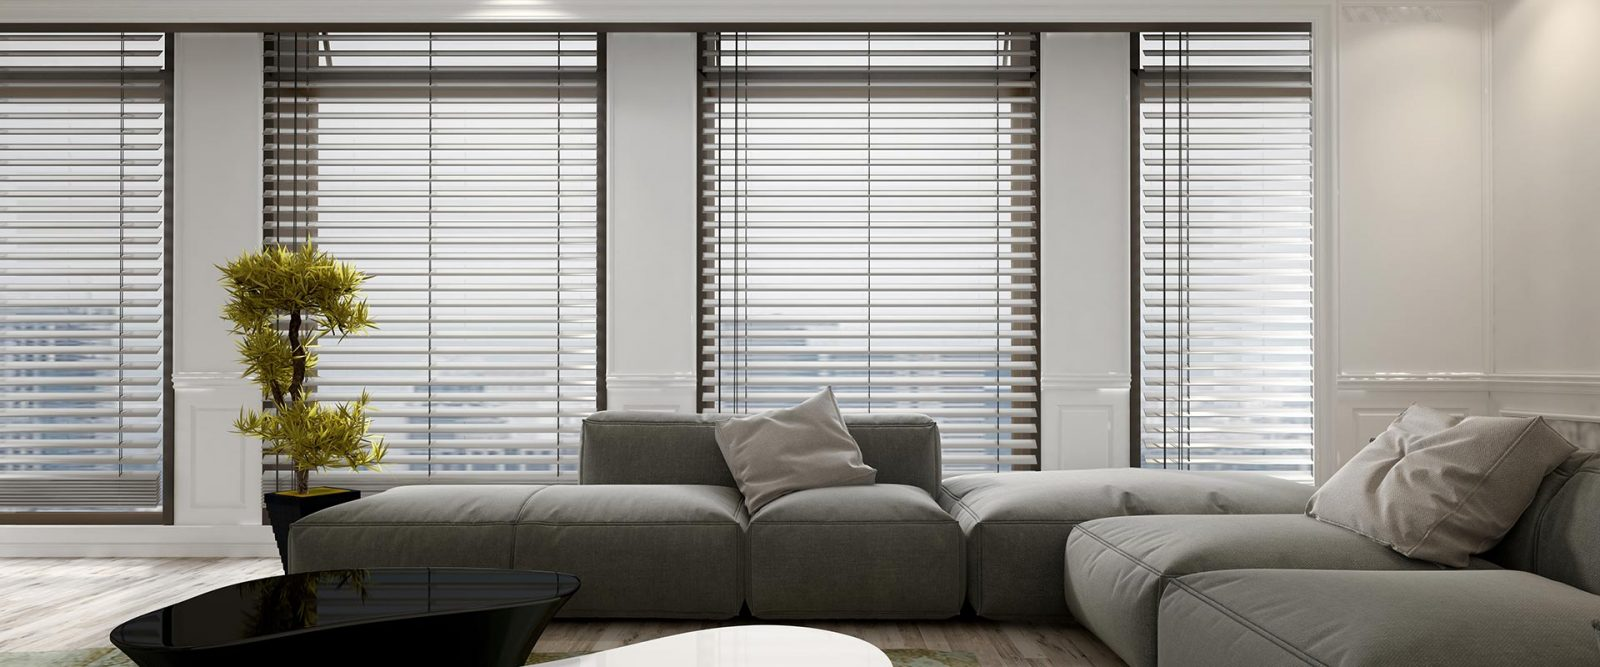 Custom Blinds - Tampa - St. Petersburg FL